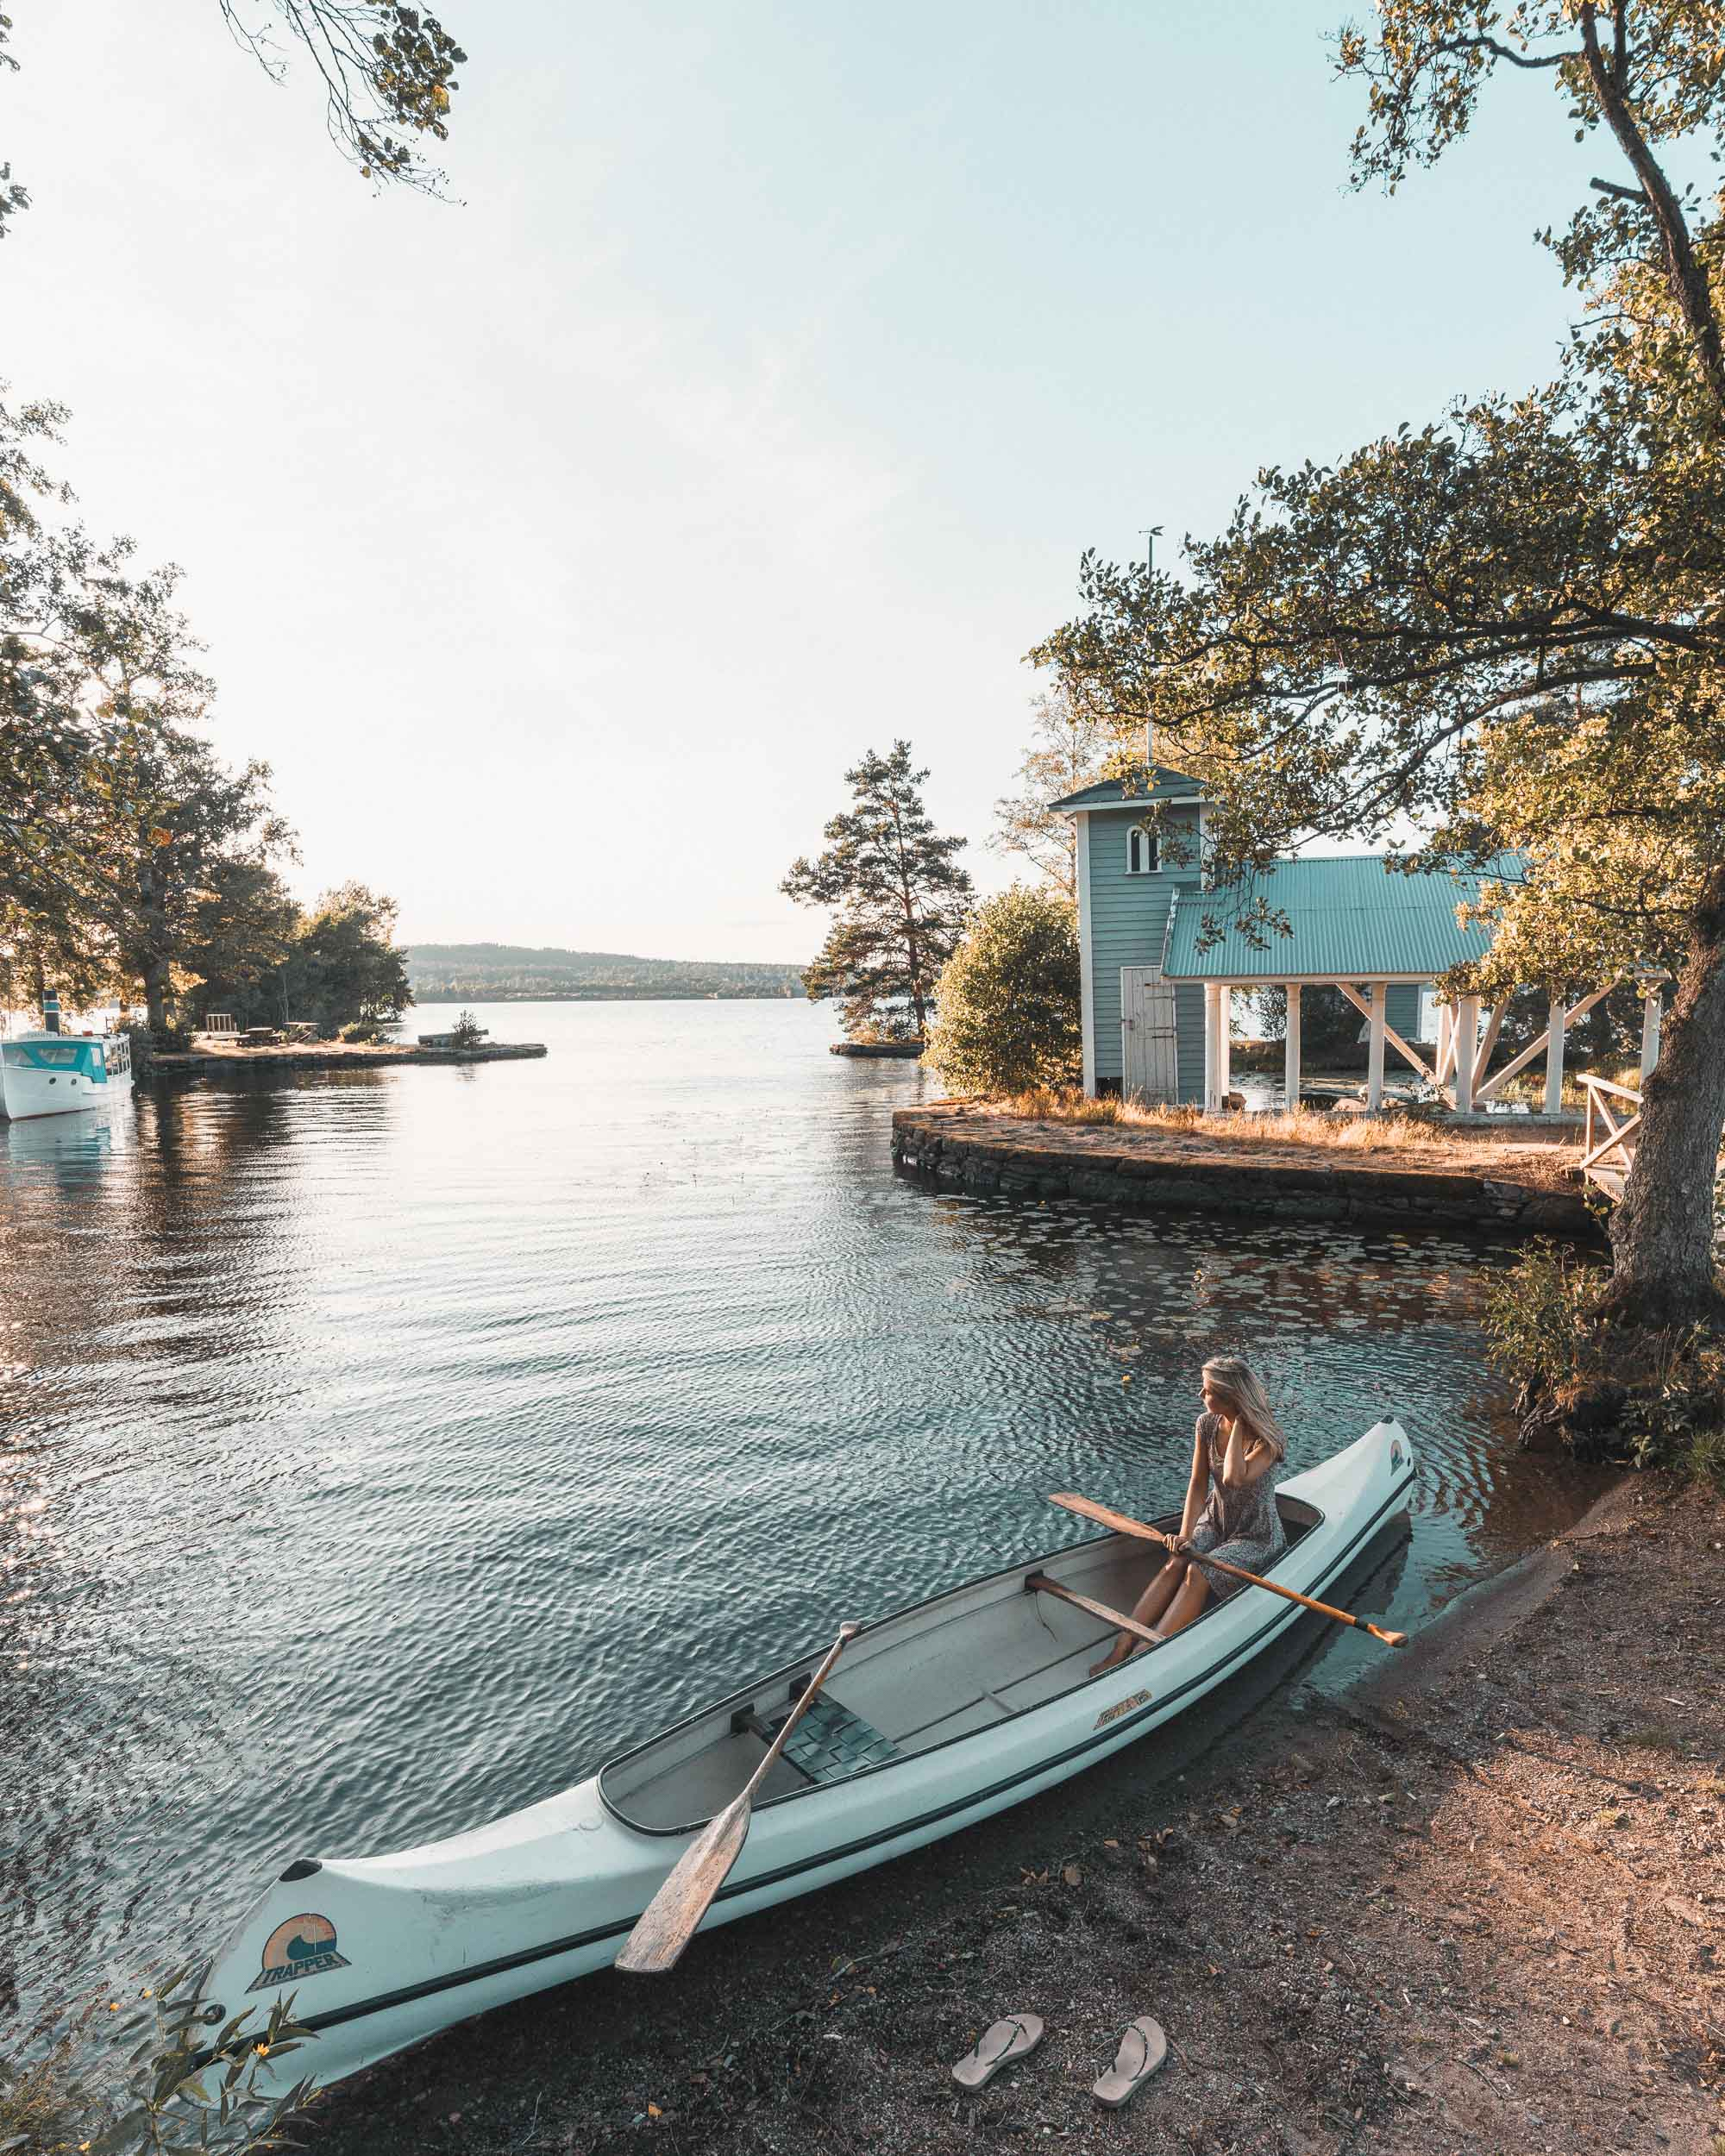 Stockholm Travel Guide: Travel Guide: West Sweden To Gothenburg